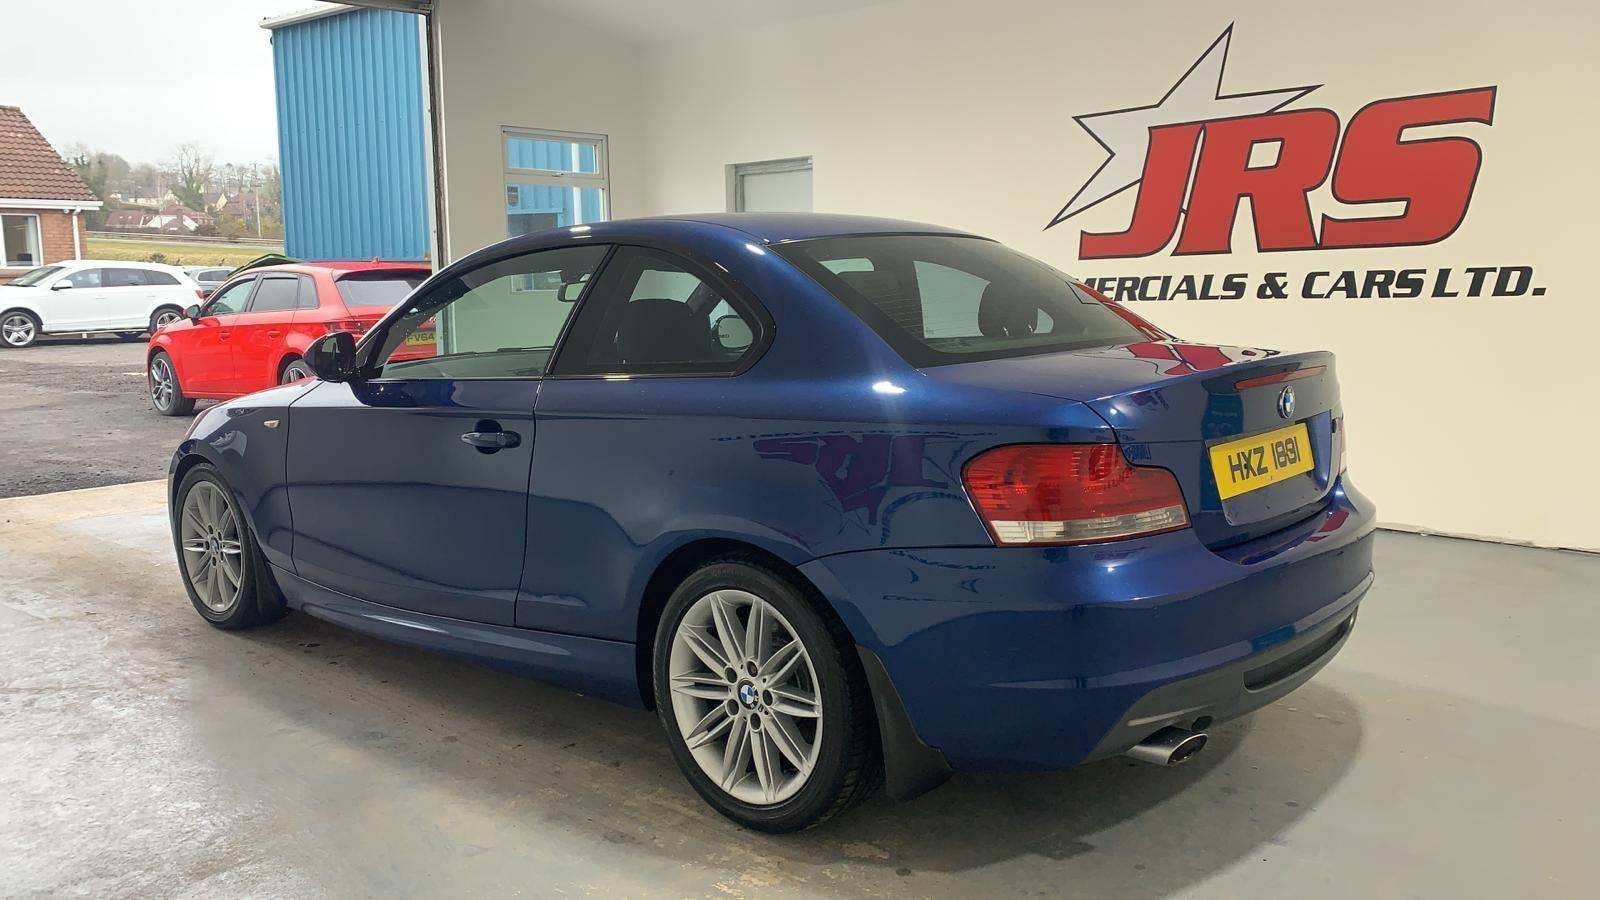 2010 BMW 1 Series 2.0 118d M Sport Diesel Manual **£30 Road Tax** – J R S Commercials And Cars Dungannon full